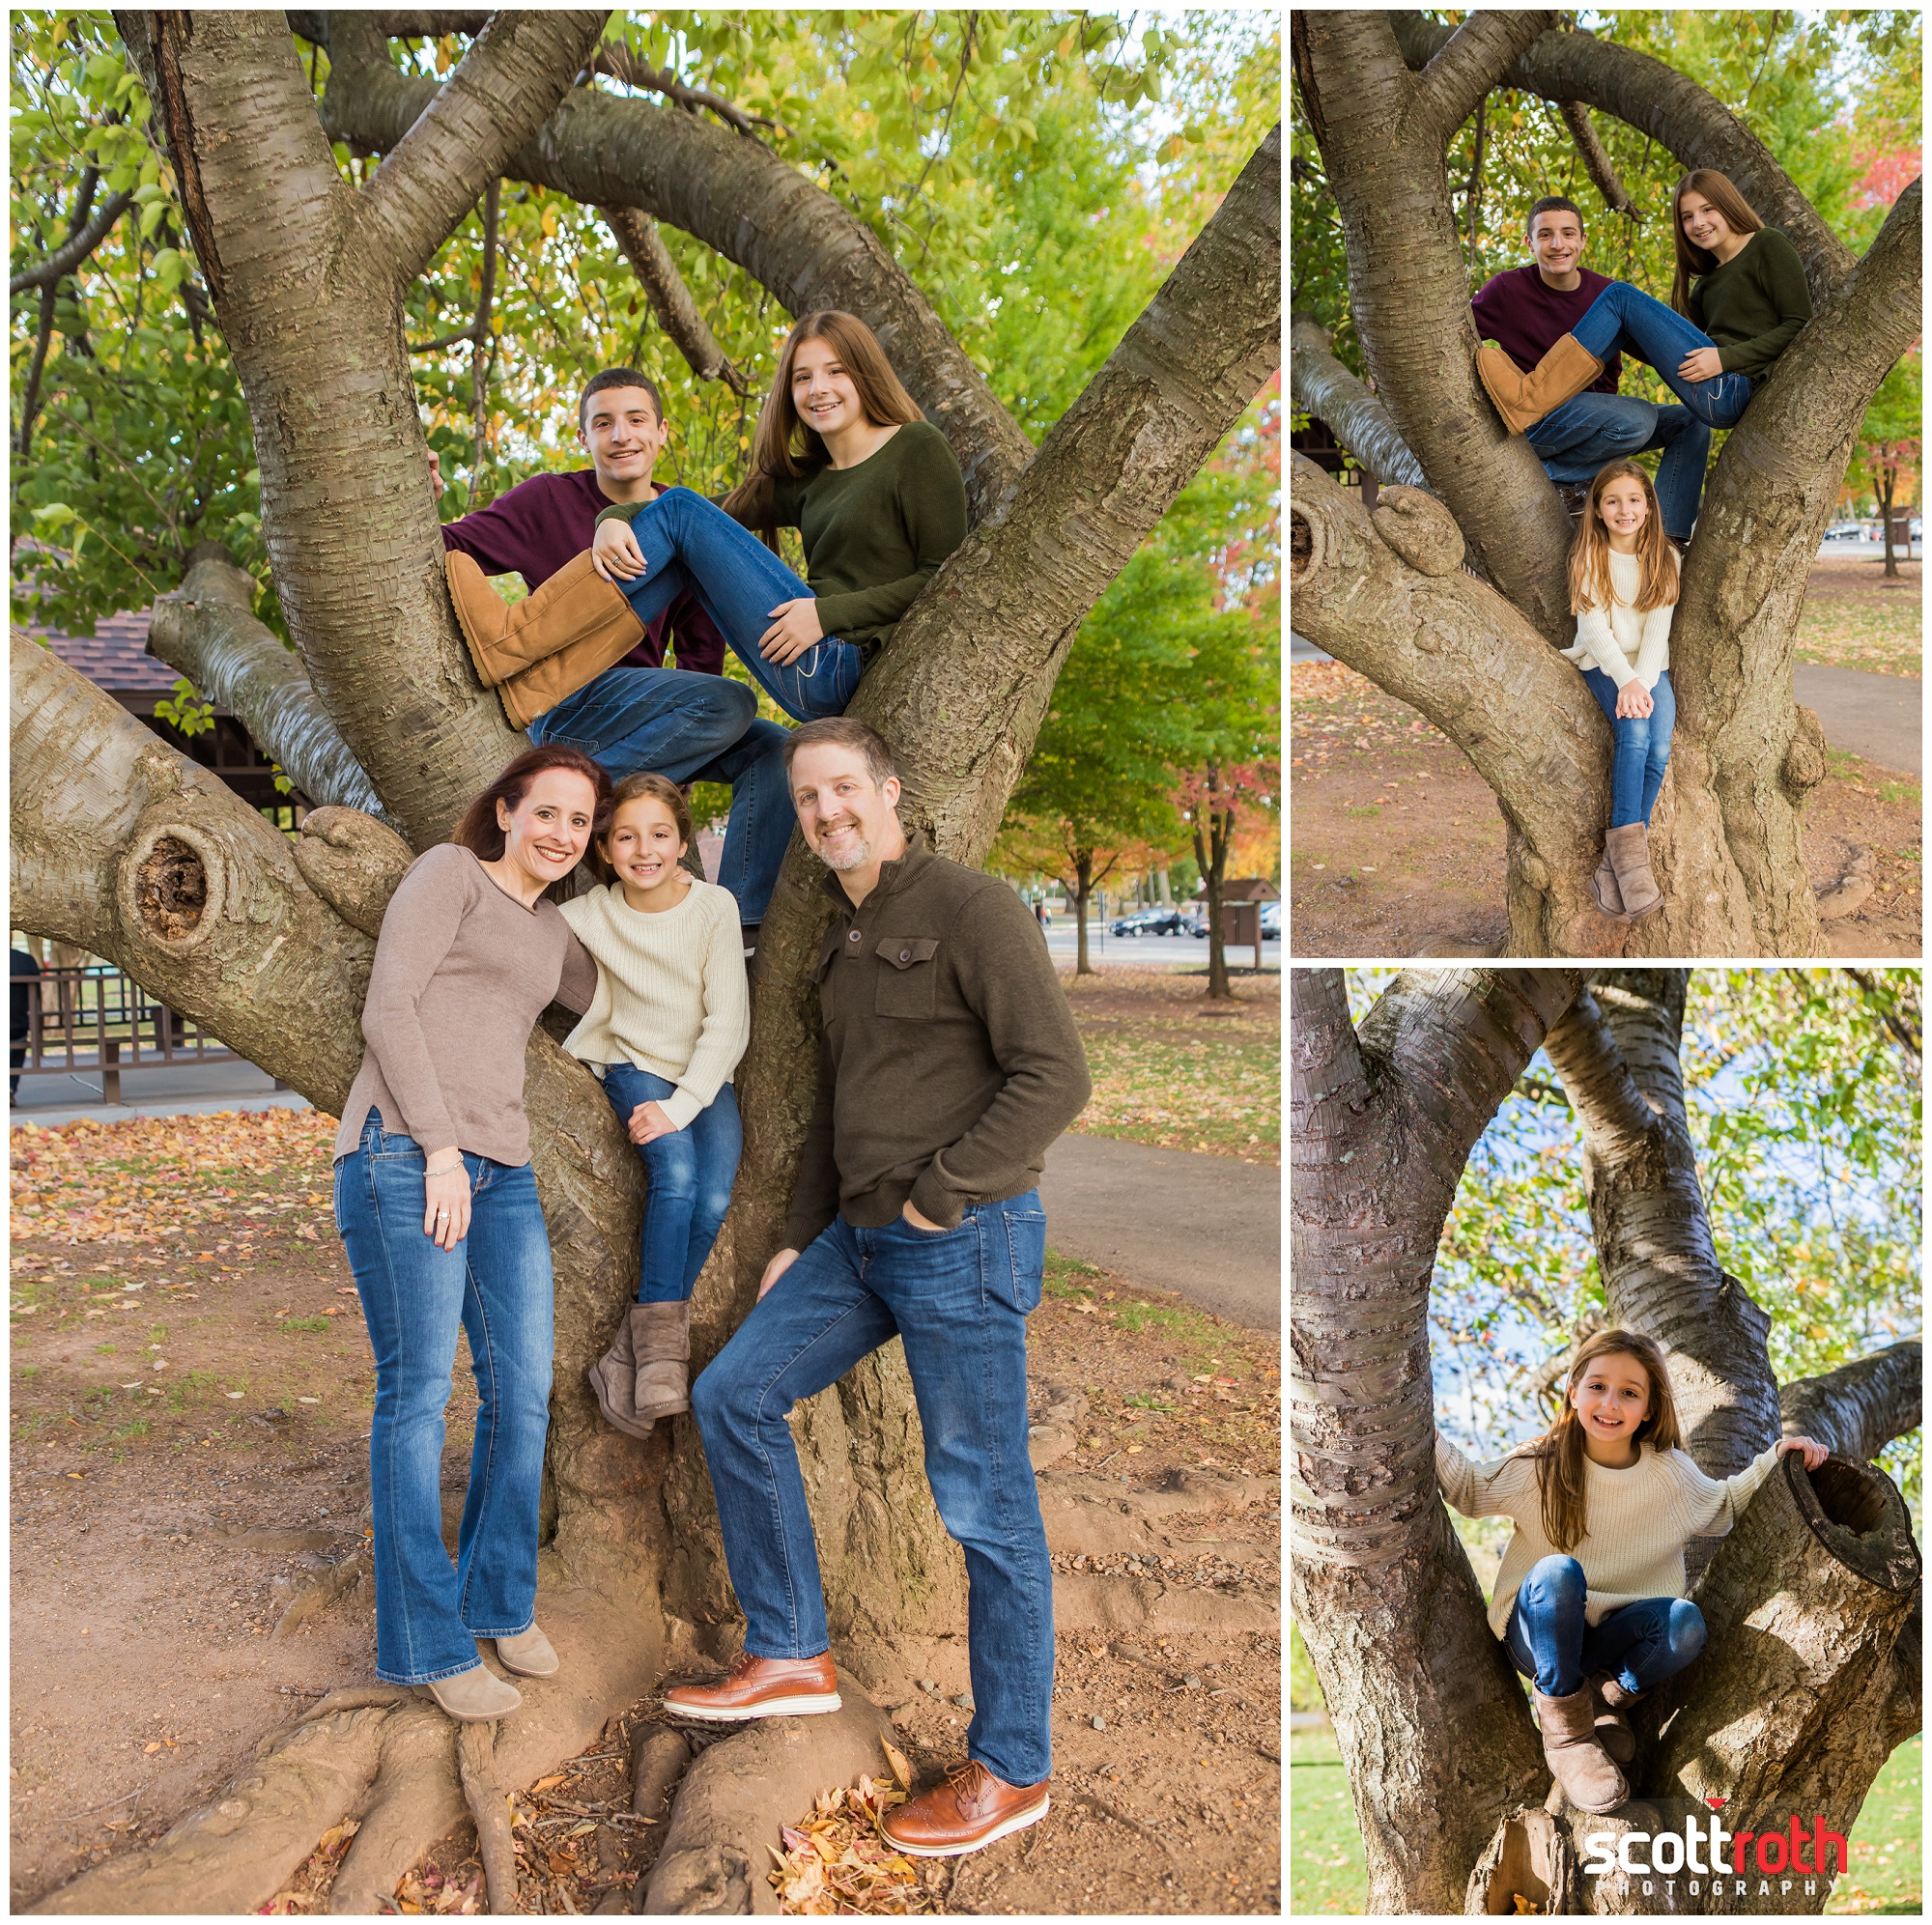 family-photo-session-roosevelt-park-0376.jpg